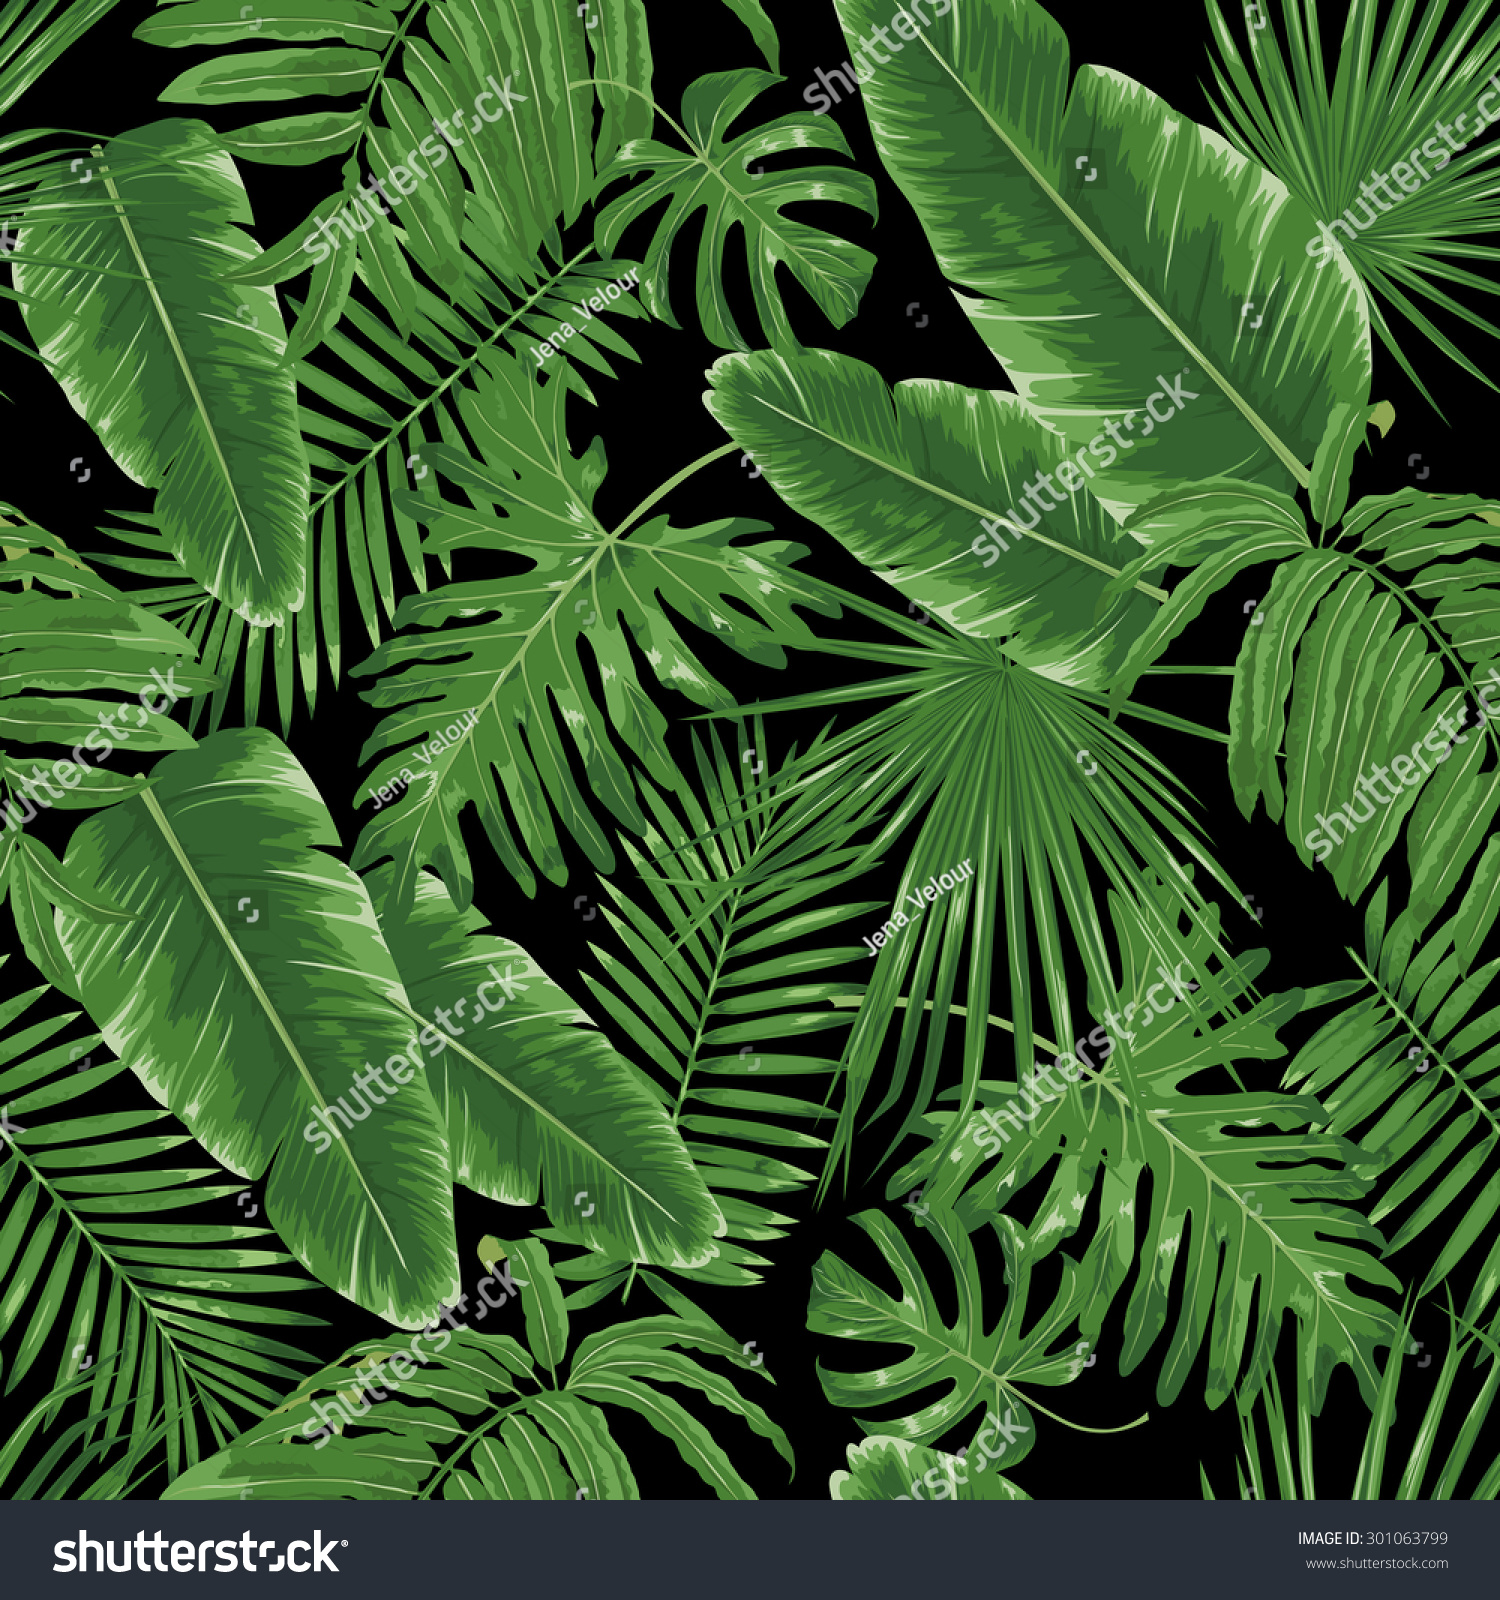 Tropical print background tumblr tropical patterns related keywords - Image Gallery Jungle Leaf Pattern